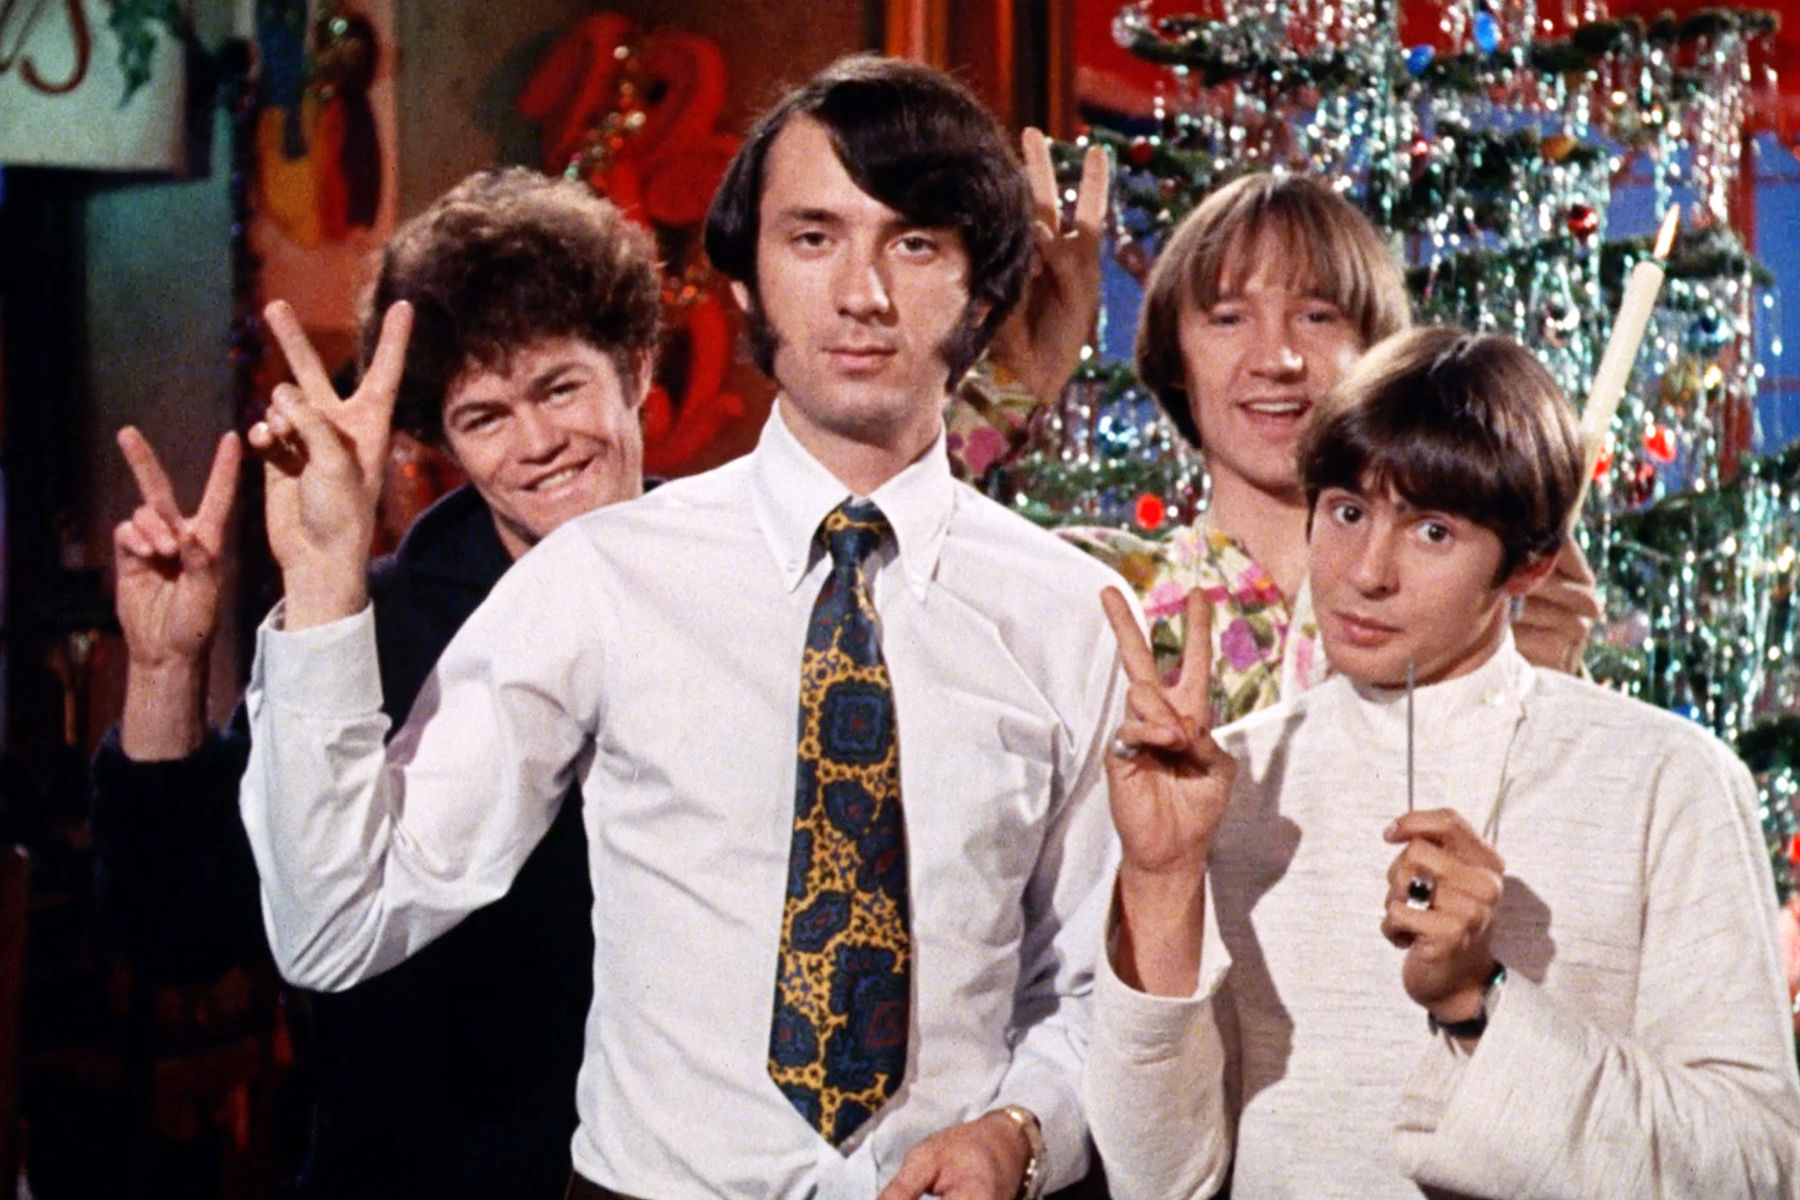 The Monkees Made a Christmas Album With Rivers Cuomo and R.E.M.'s Peter Buck